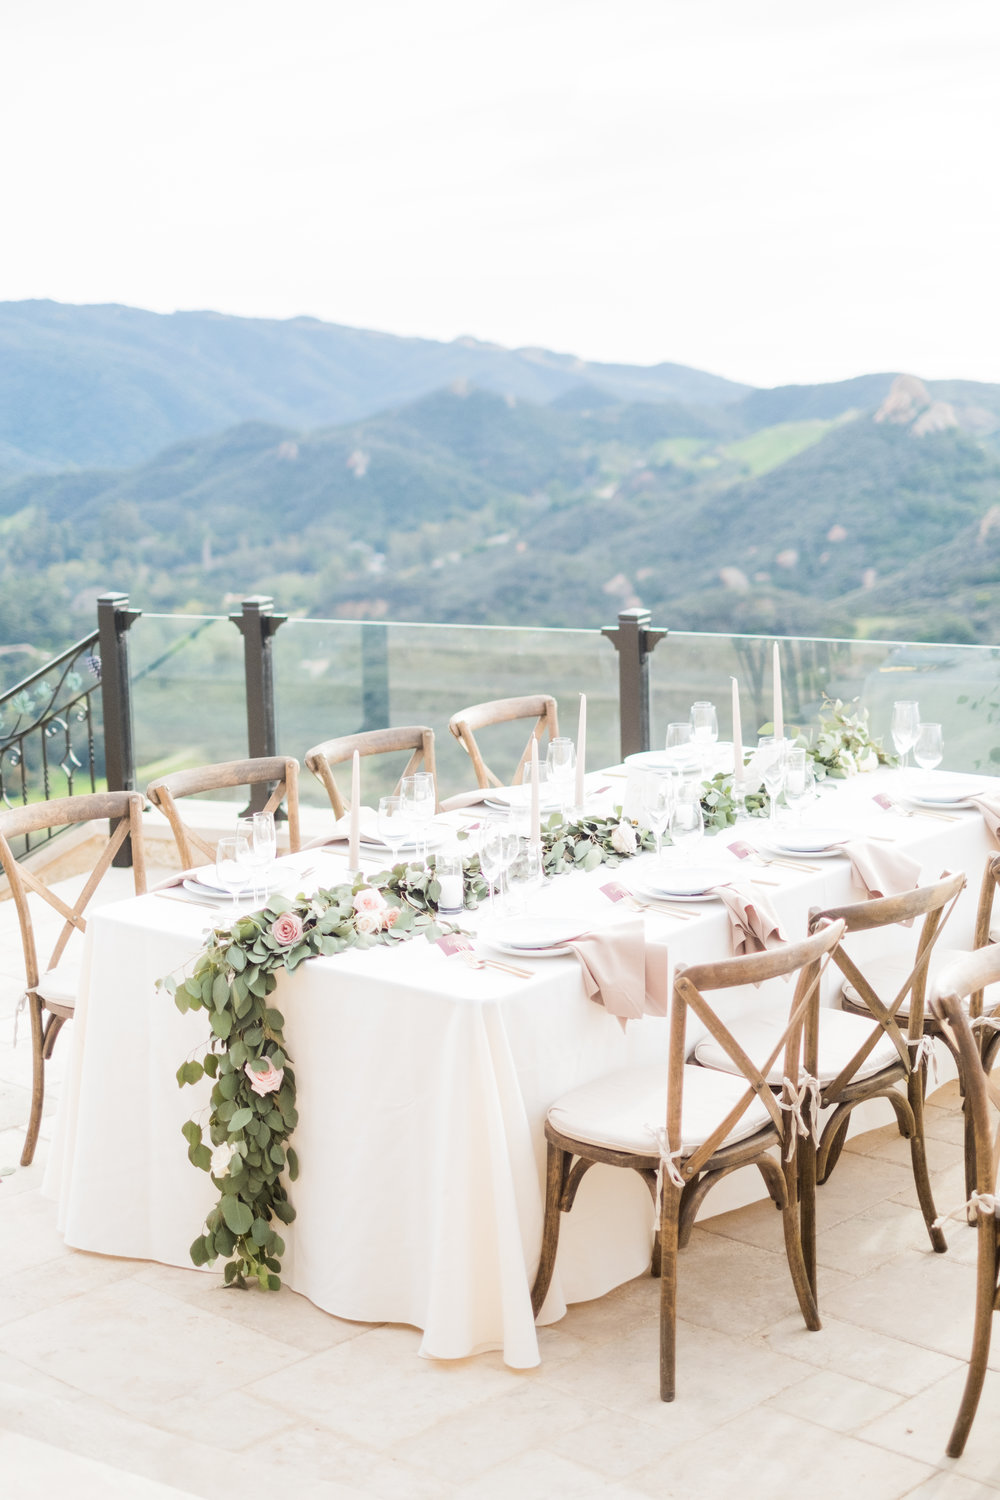 Spring Wedding at Romantic Hilltop Vineyard Malibu Rocky Oaks Sally Pinera Finding Flora Reception Decor Garland Greenery California Wedding So Happi Together